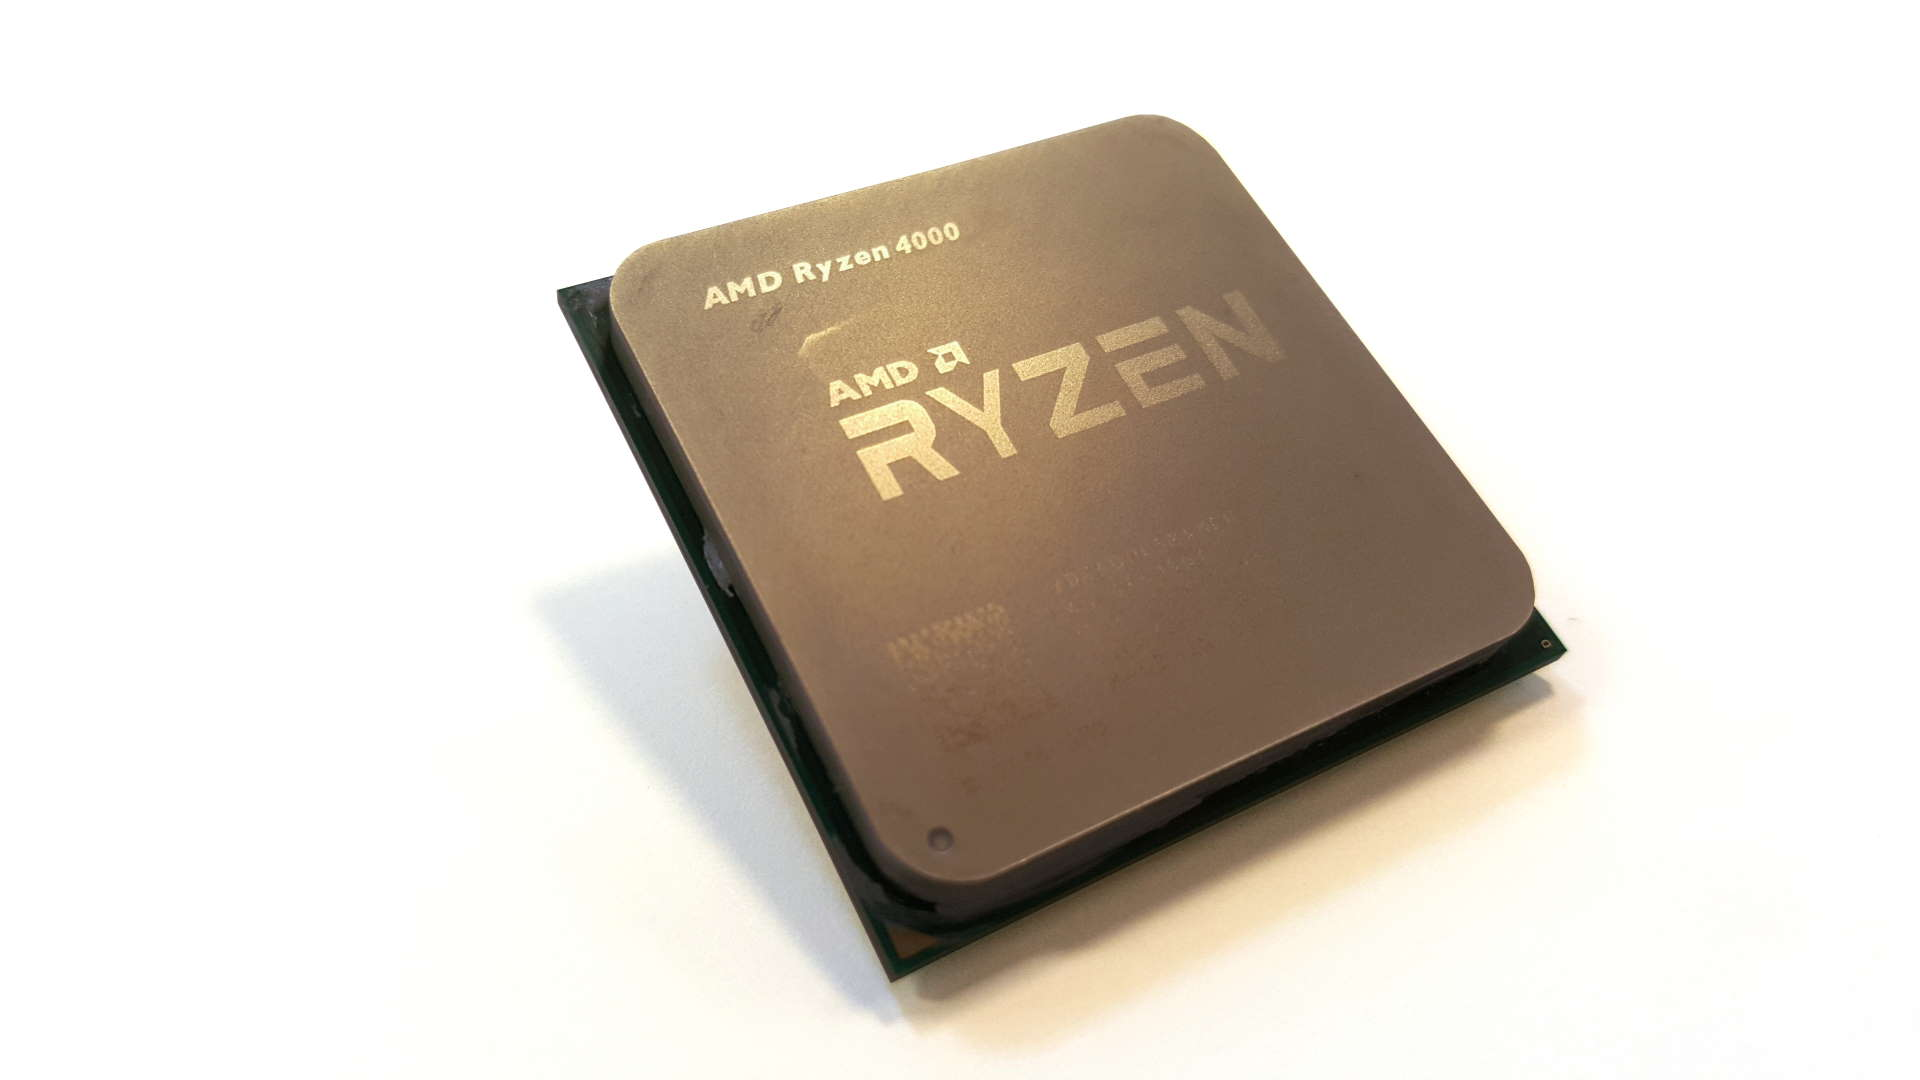 """Lisa Su confirms AMD Ryzen 4000 chips will be """"coming in early 2020"""""""